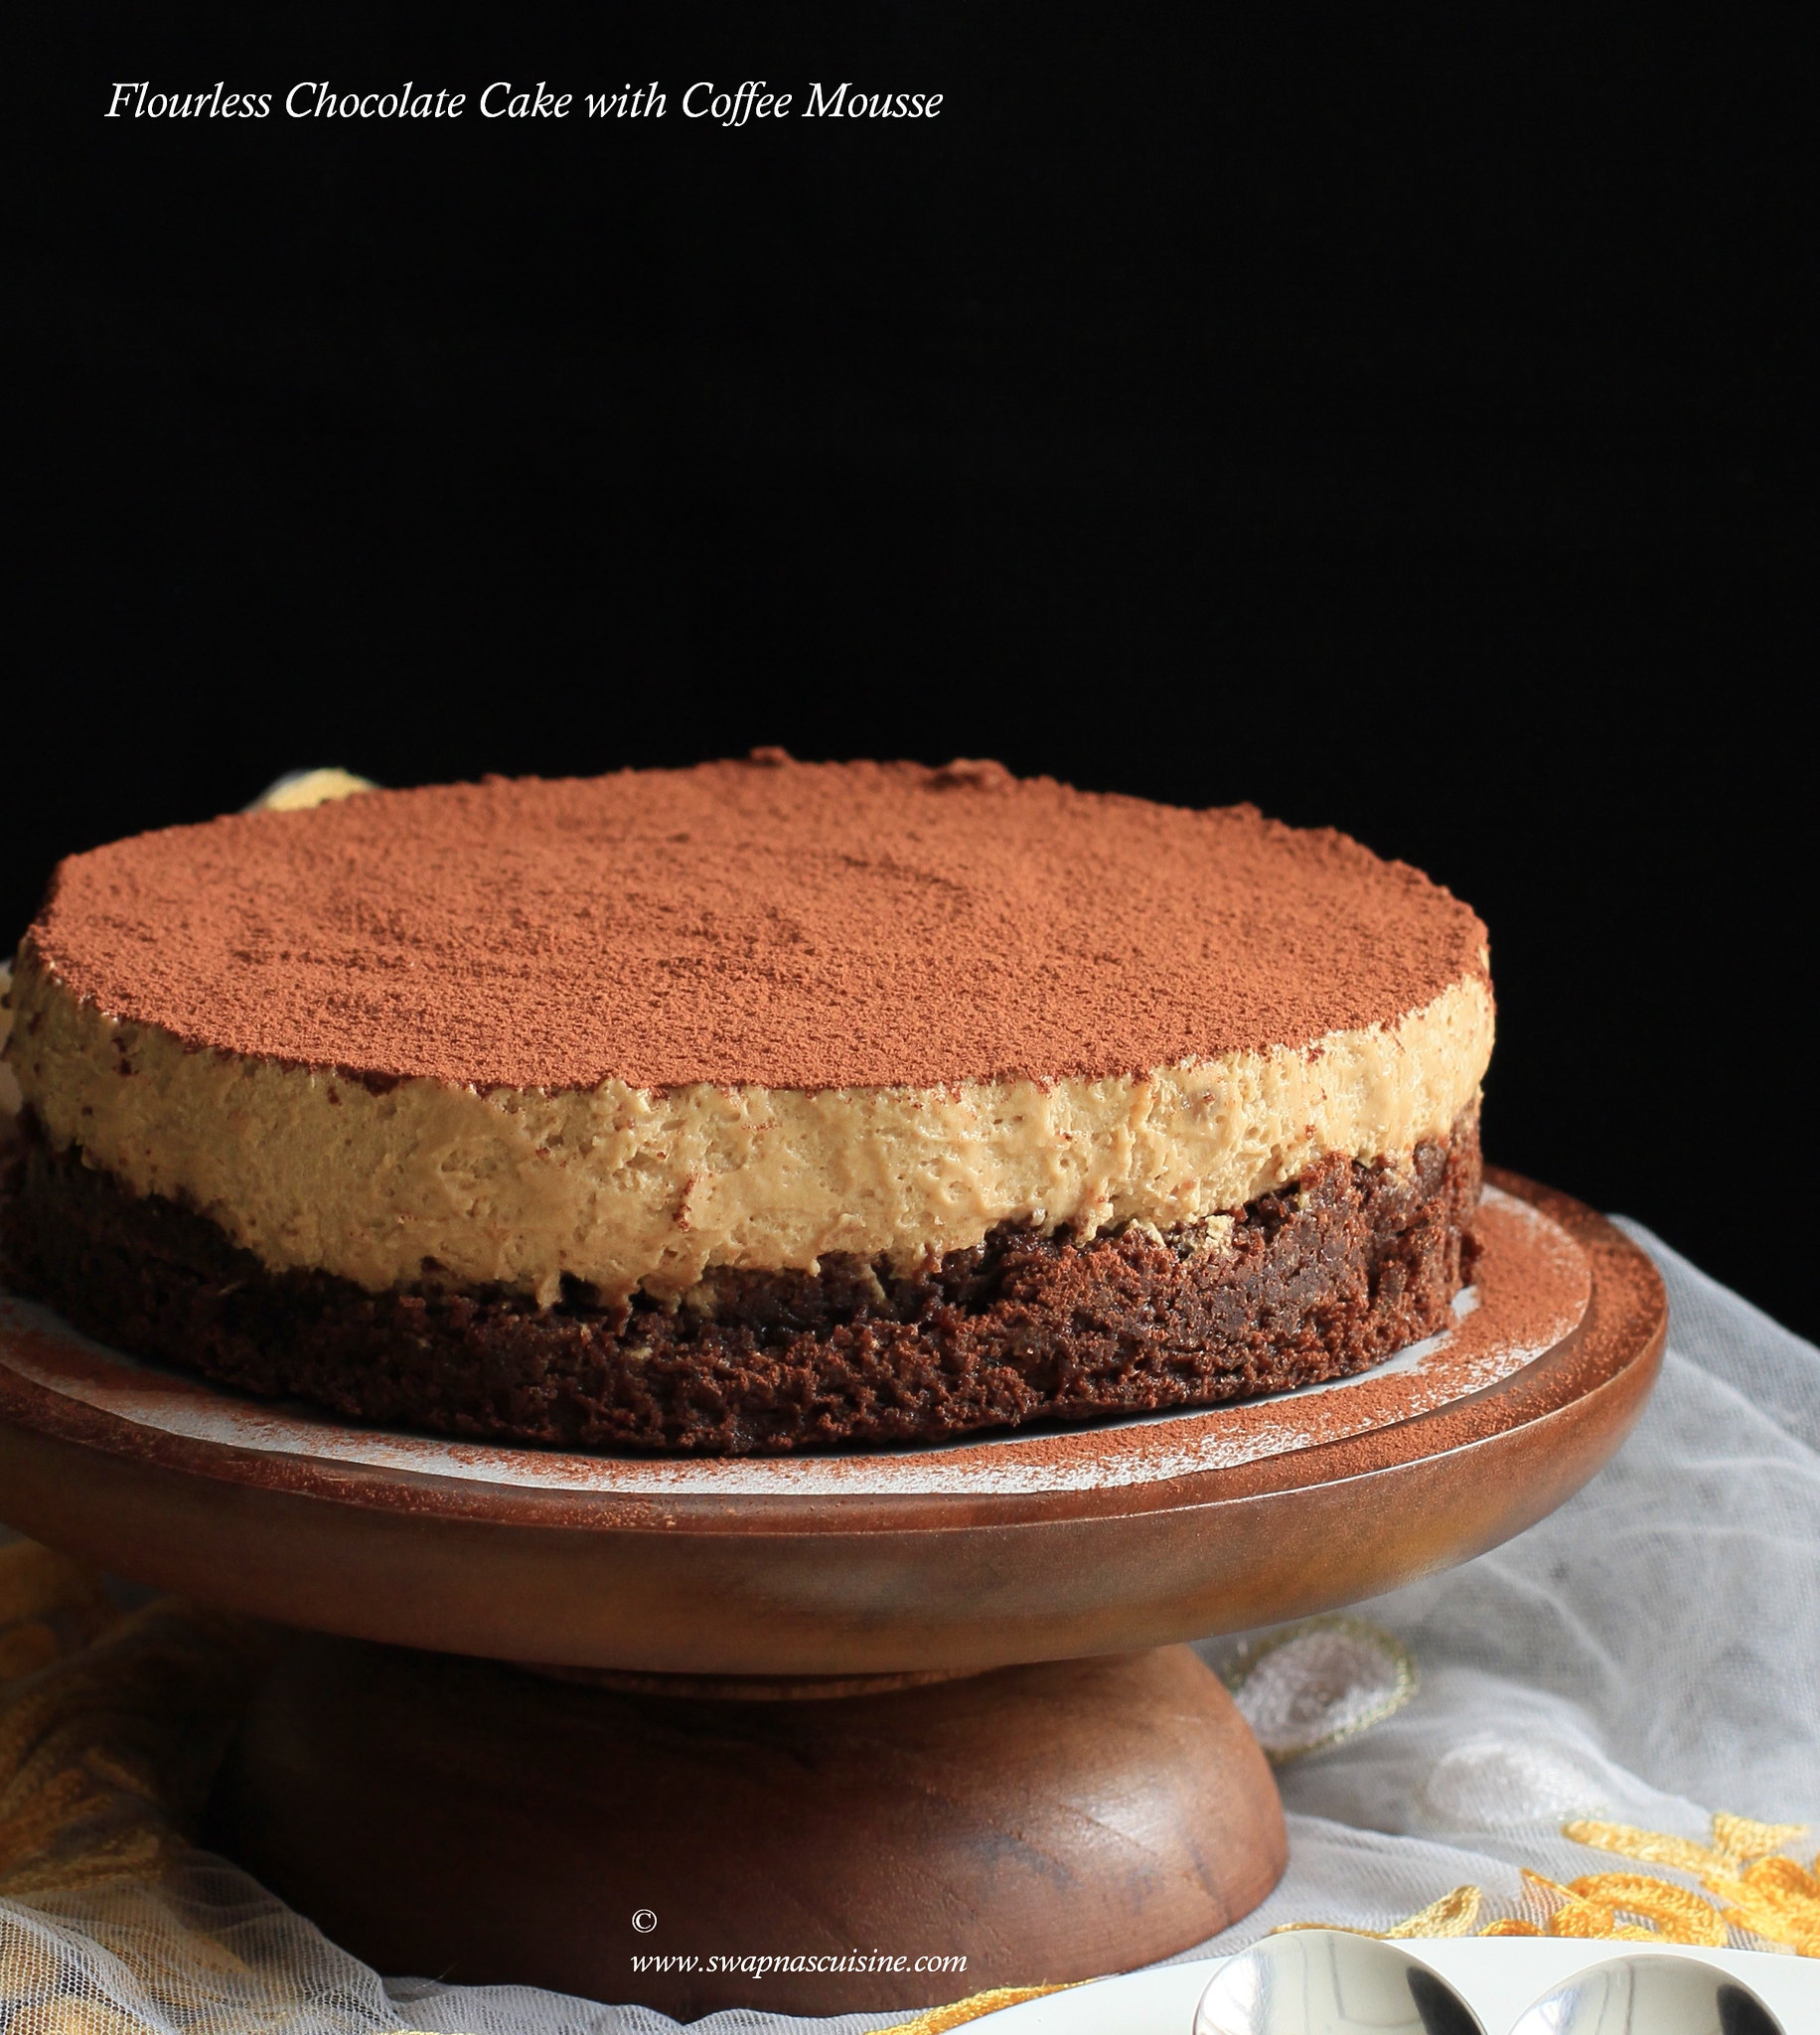 Swapna's Cuisine: Flourless Chocolate Cake with Coffee Mousse